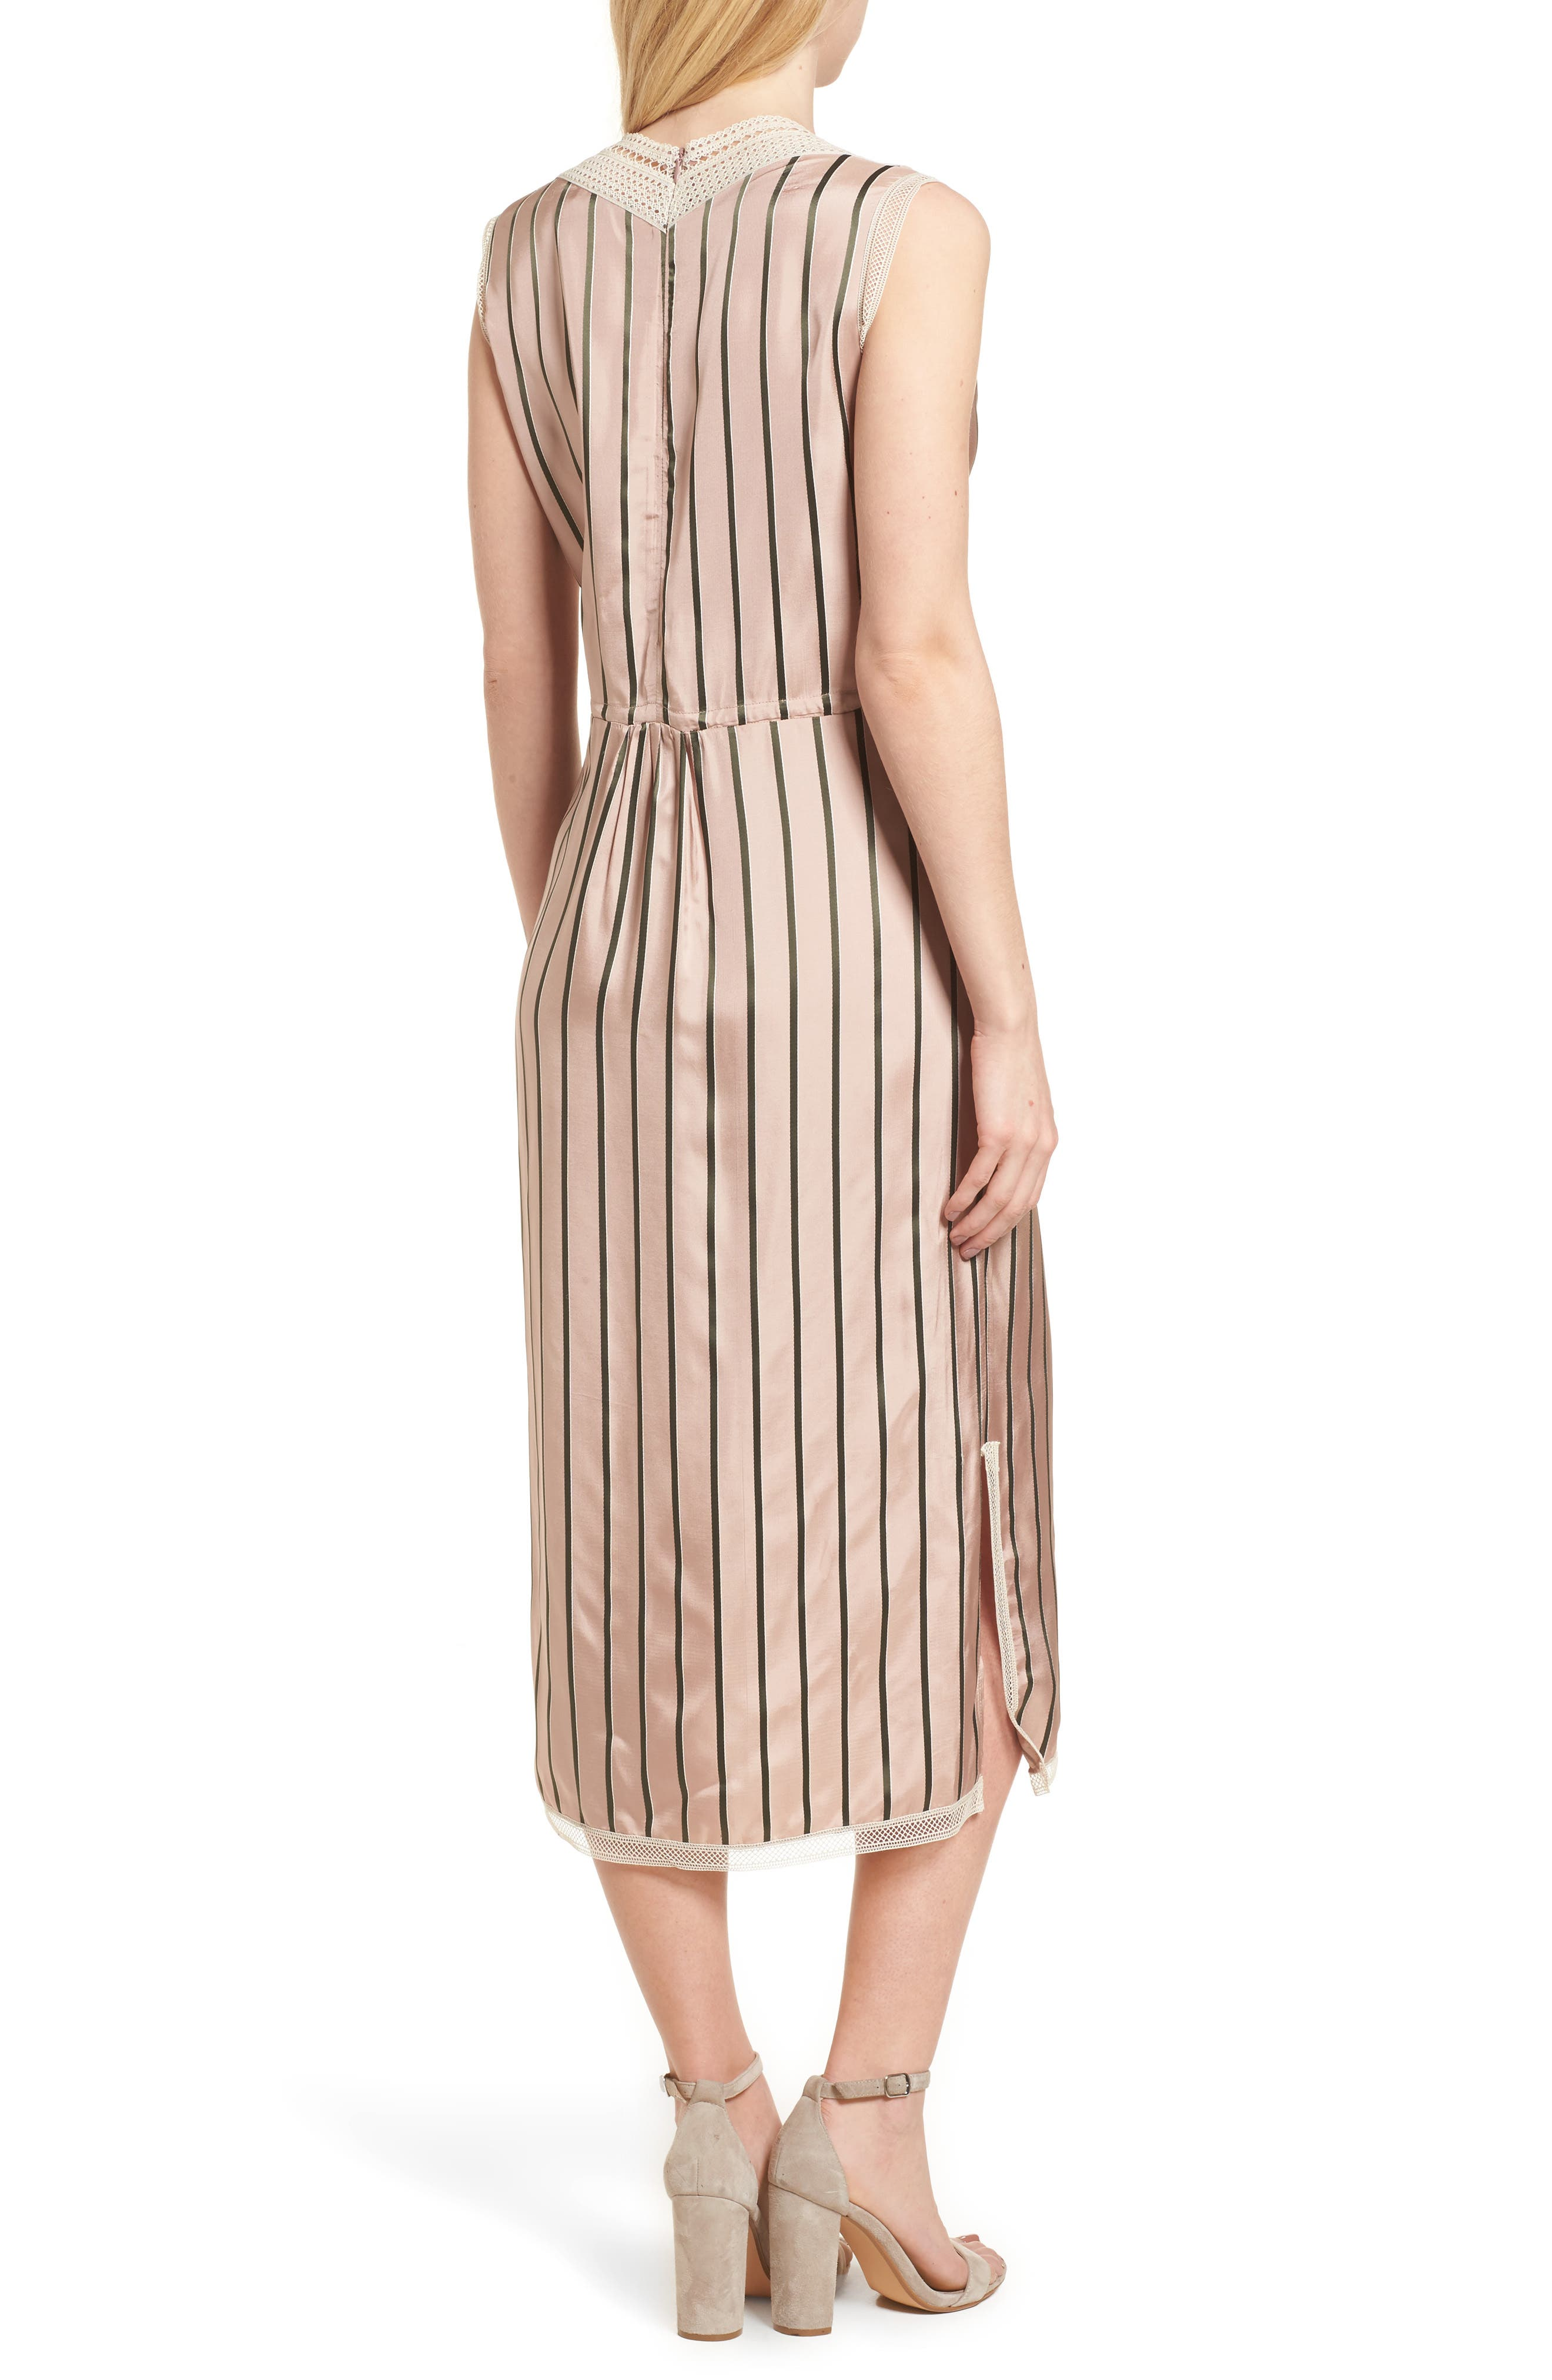 Cosway Dress,                             Alternate thumbnail 2, color,                             650